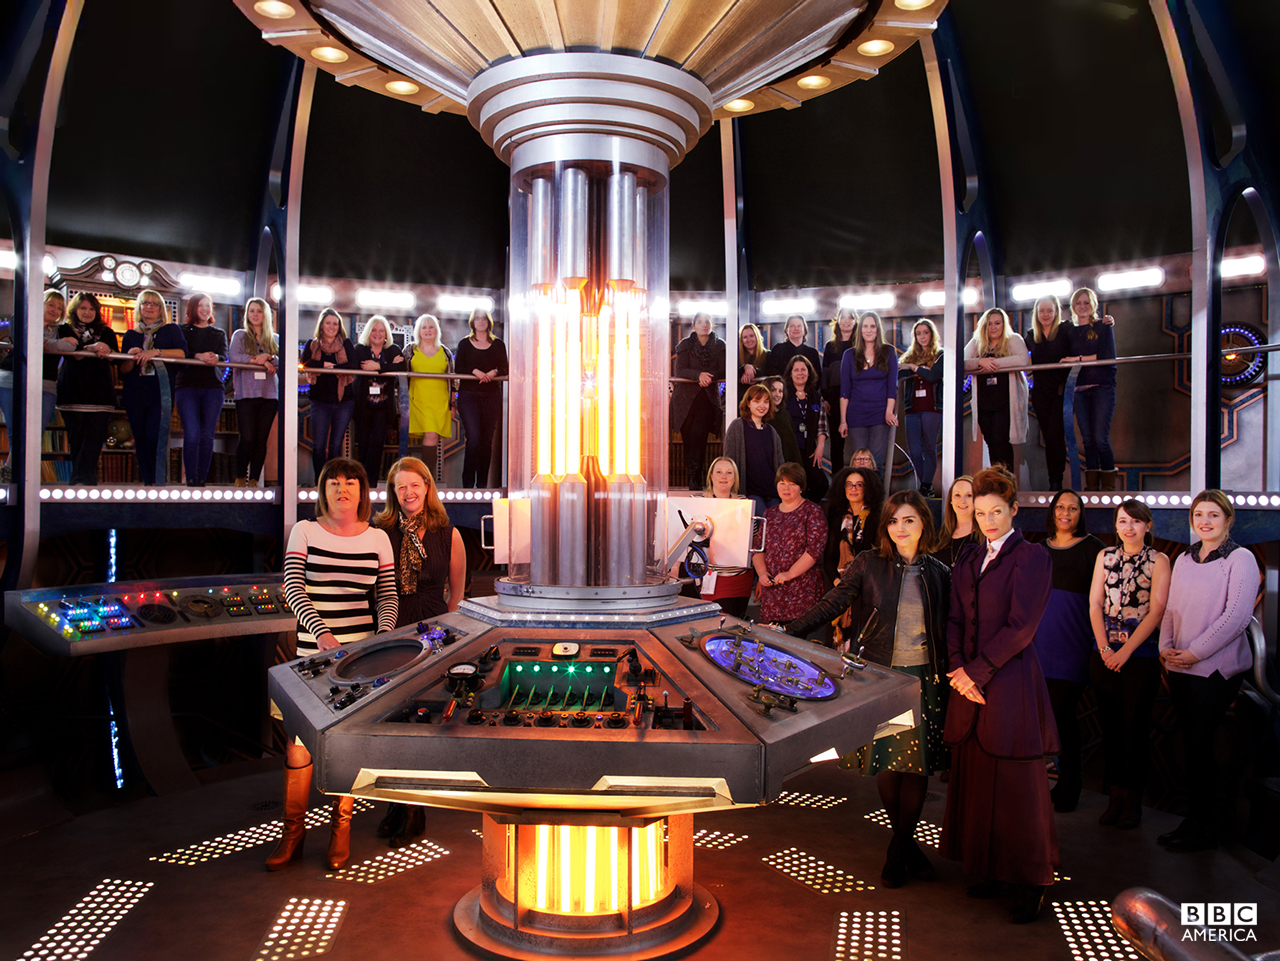 On March 8, the women of Doctor Who -- both in front of and behind the camera -- celebrated International Women's Day.